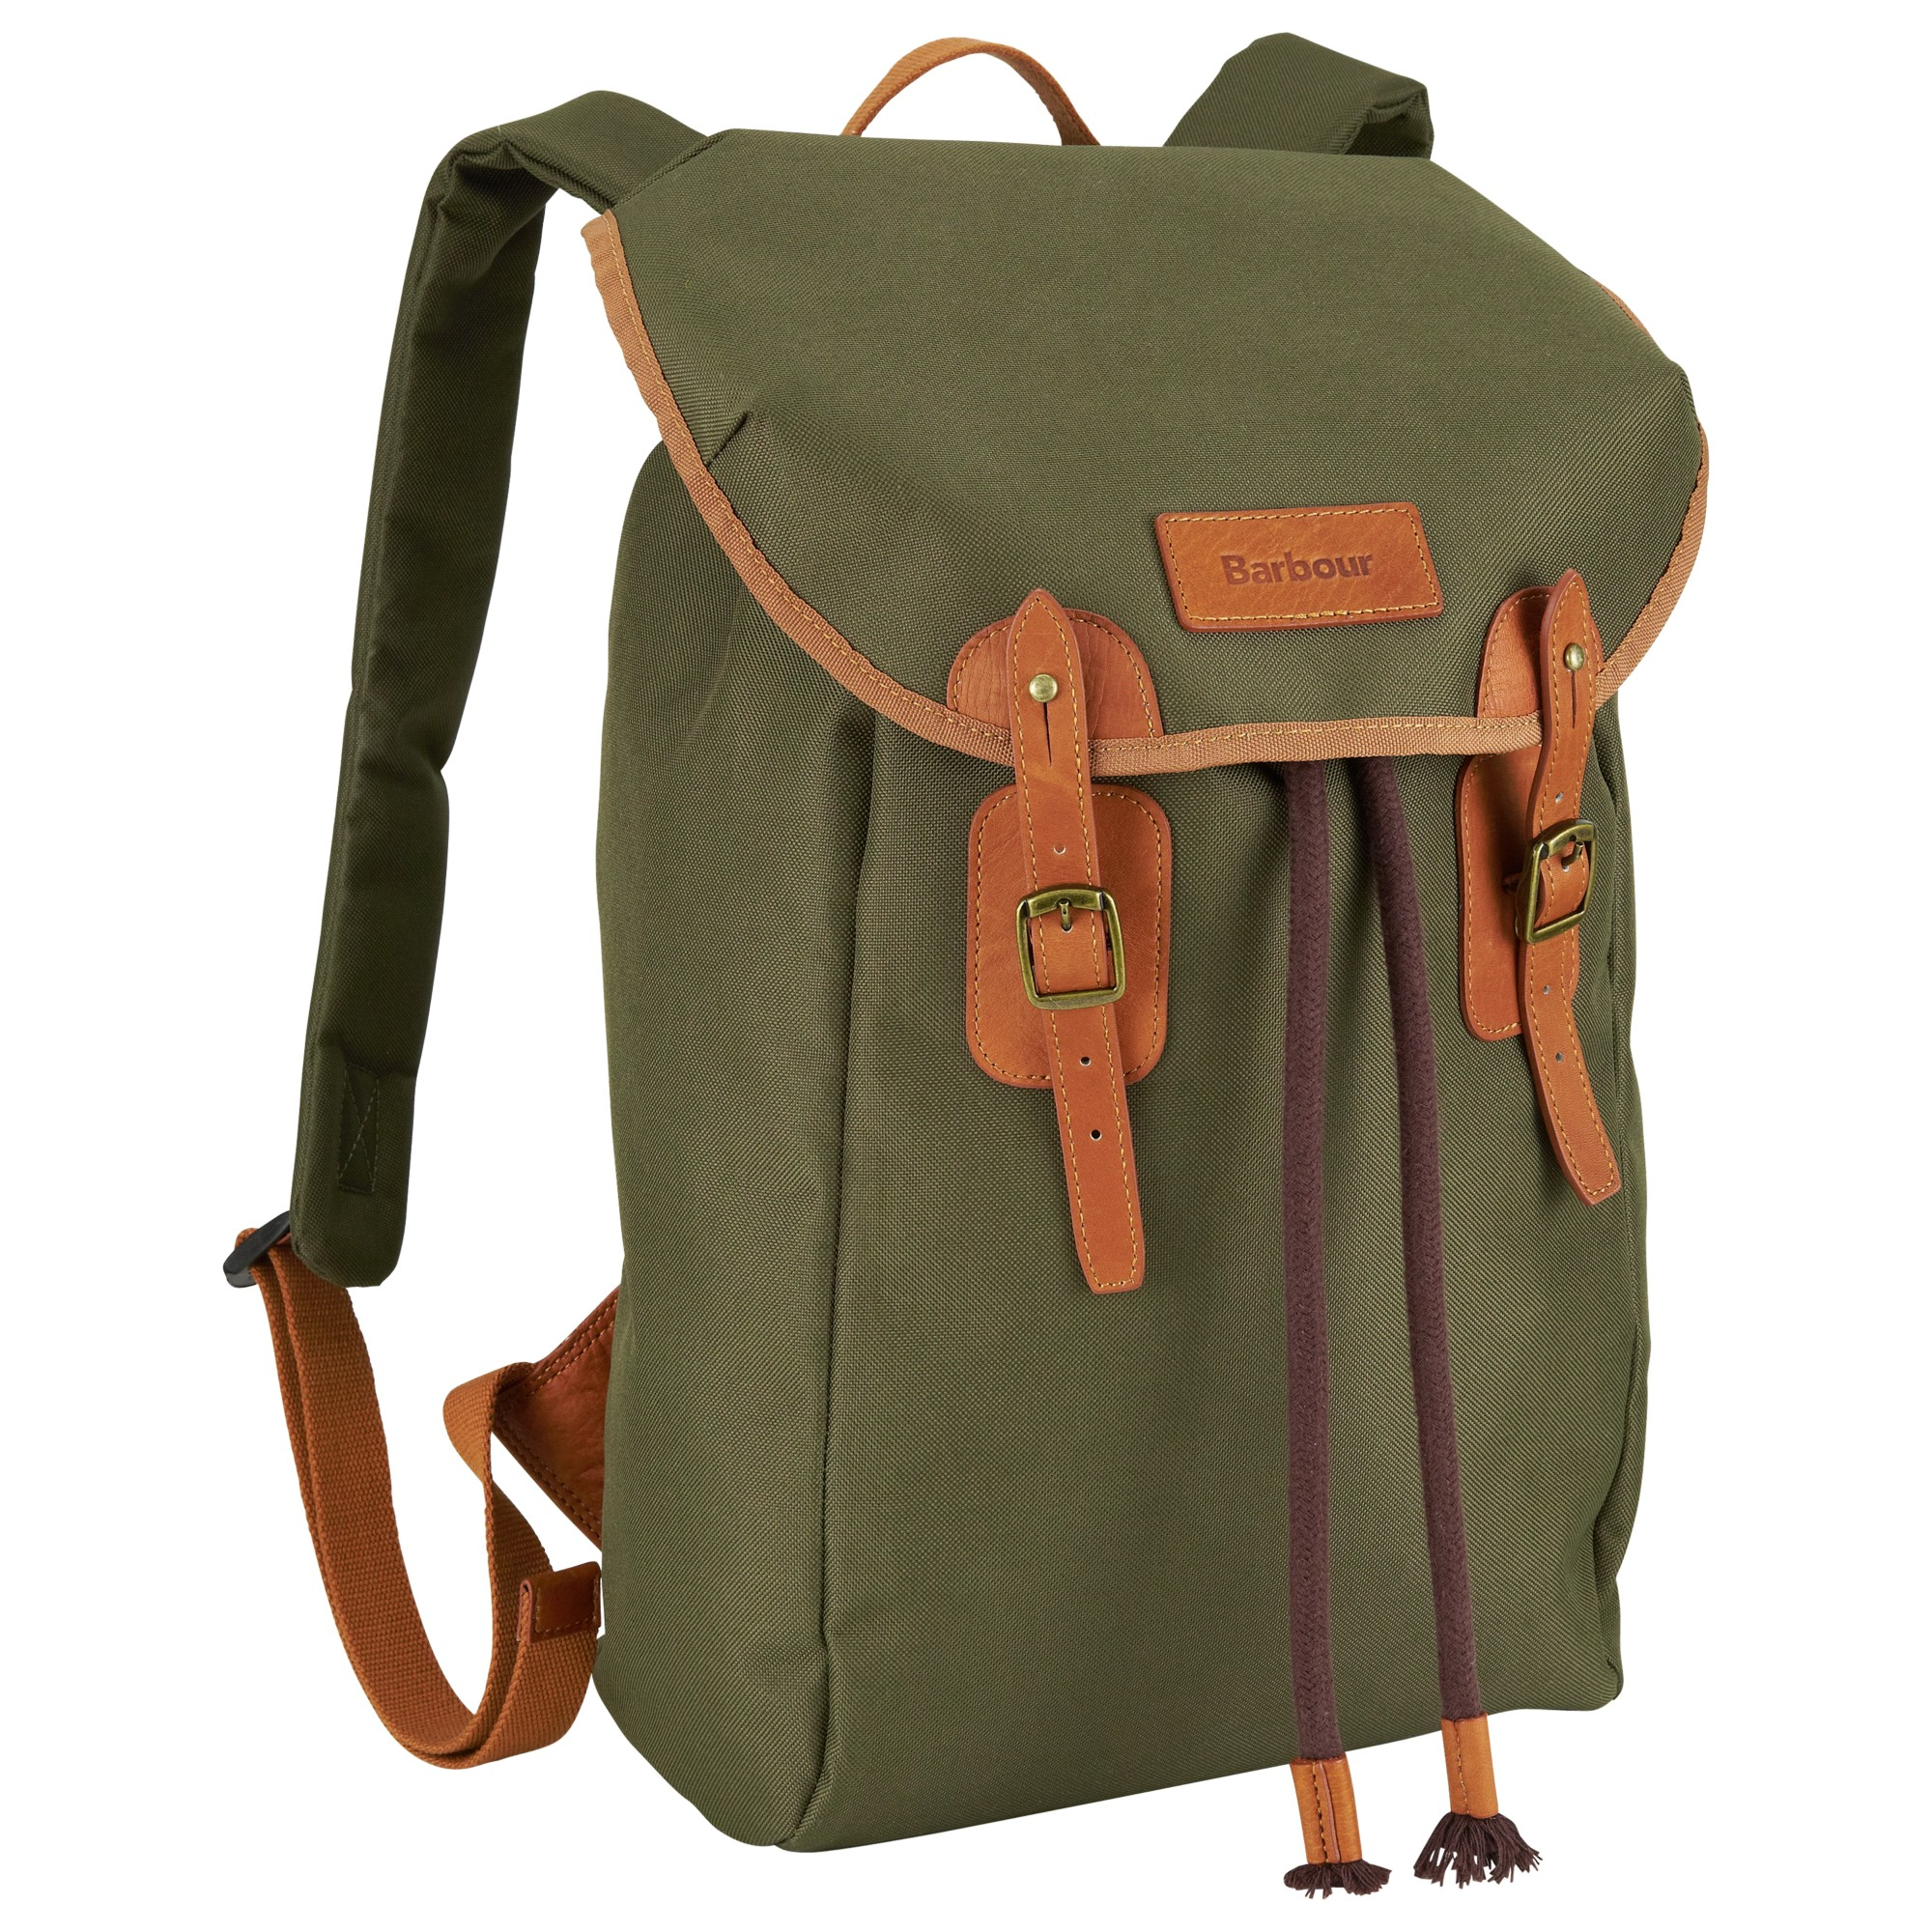 Barbour Lachie Waxed Cotton Backpack In Green For Men Lyst